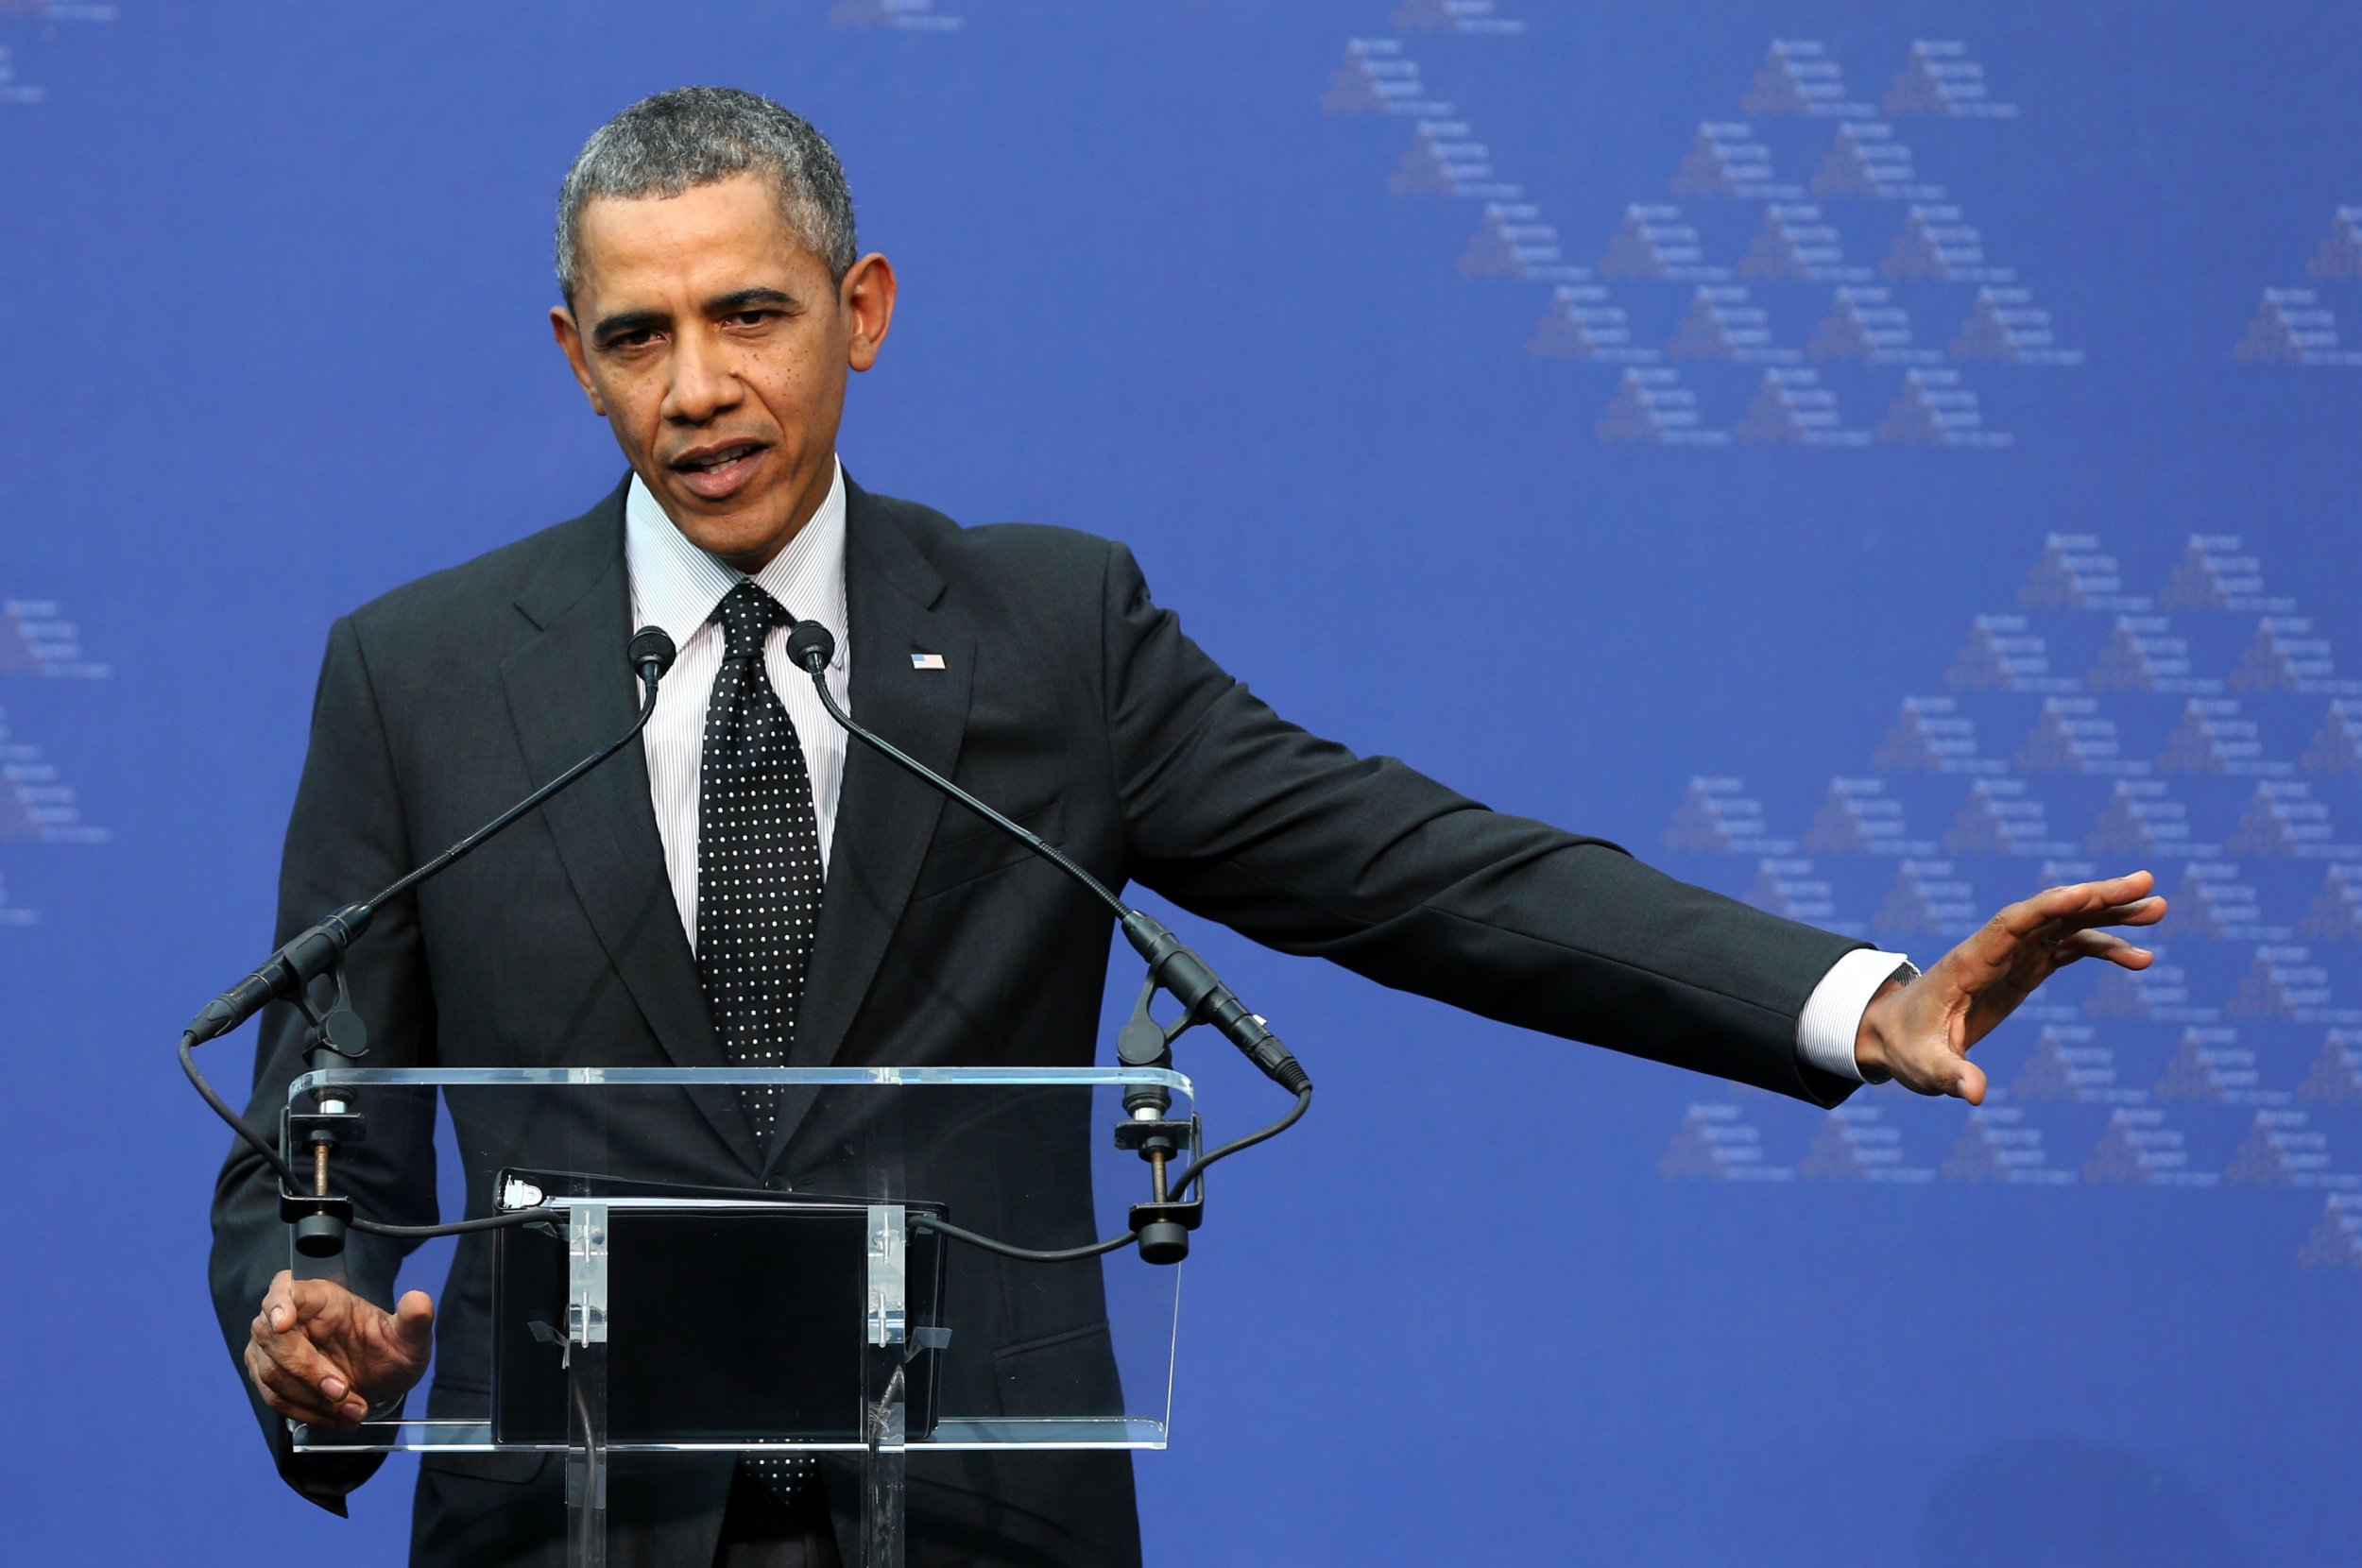 Obama in The Hague